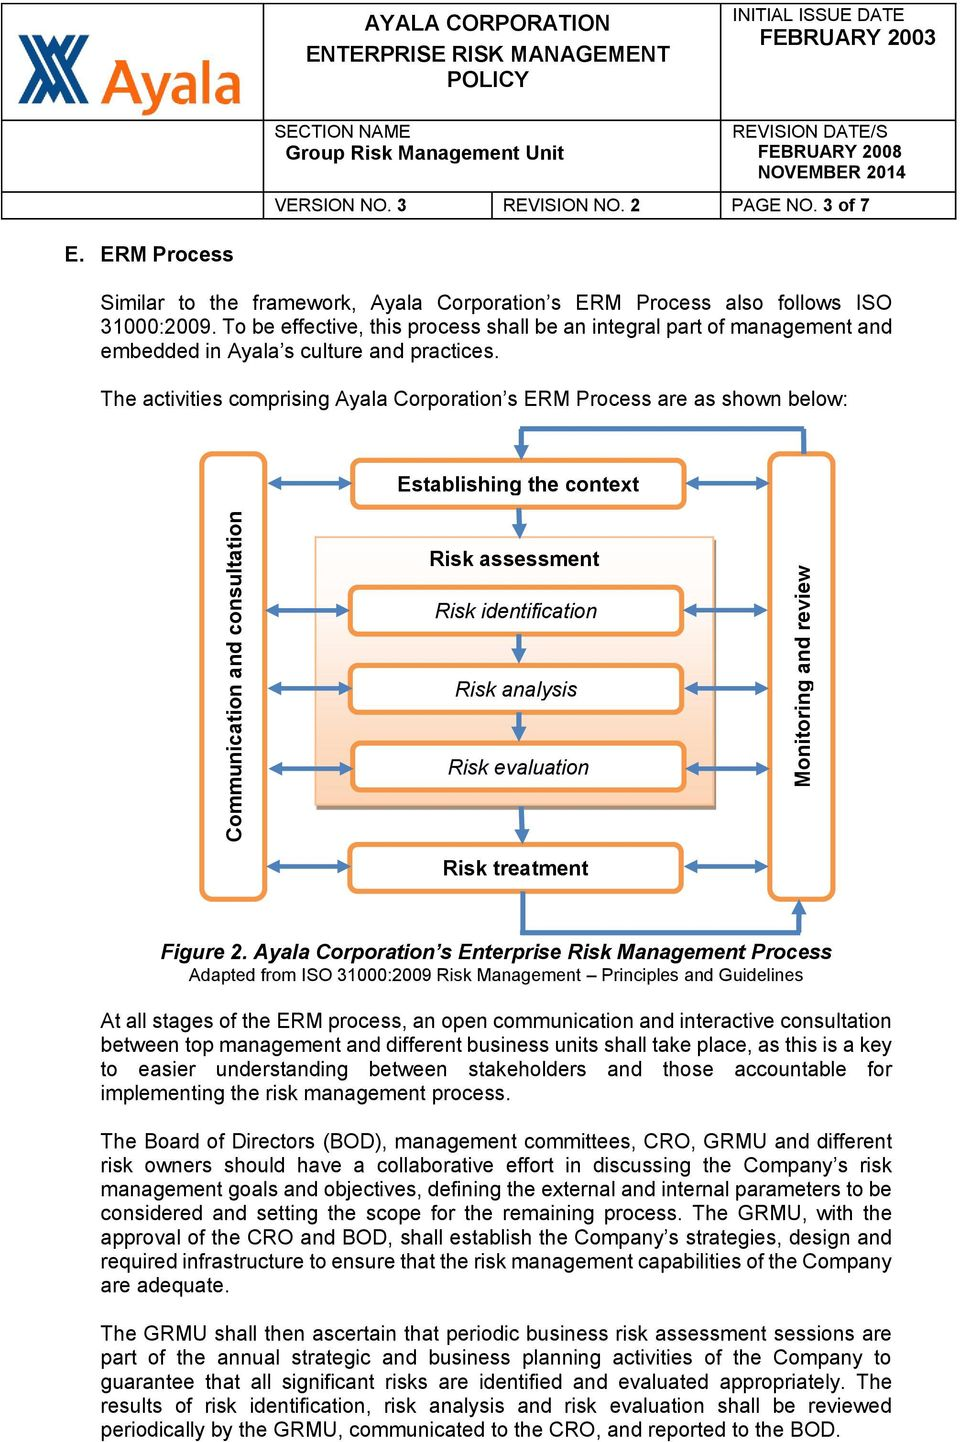 The activities comprising Ayala Corporation s ERM Process are as shown below: Establishing the context Communication and consultation Risk assessment Risk identification Risk analysis Risk evaluation